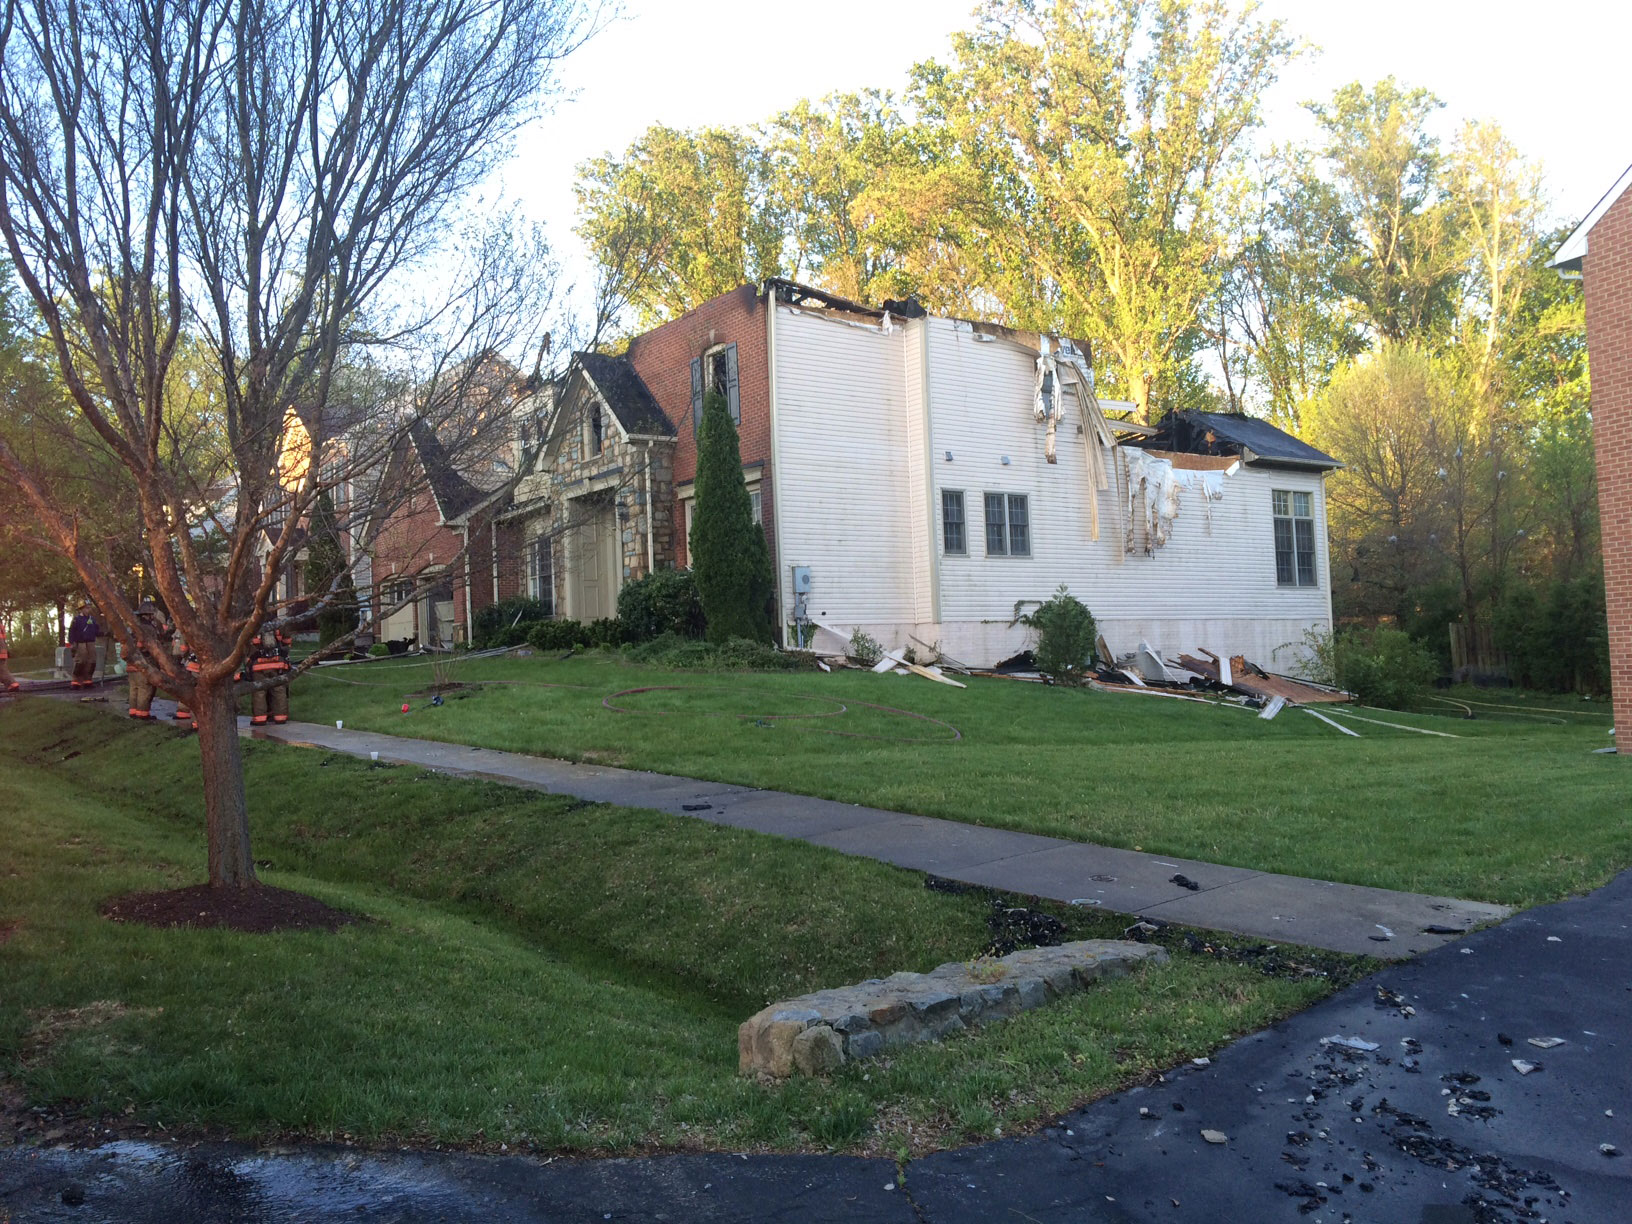 The aftermath of a house fire in White Oak, Maryland. (Courtesy Montgomery County Fire and Rescue)